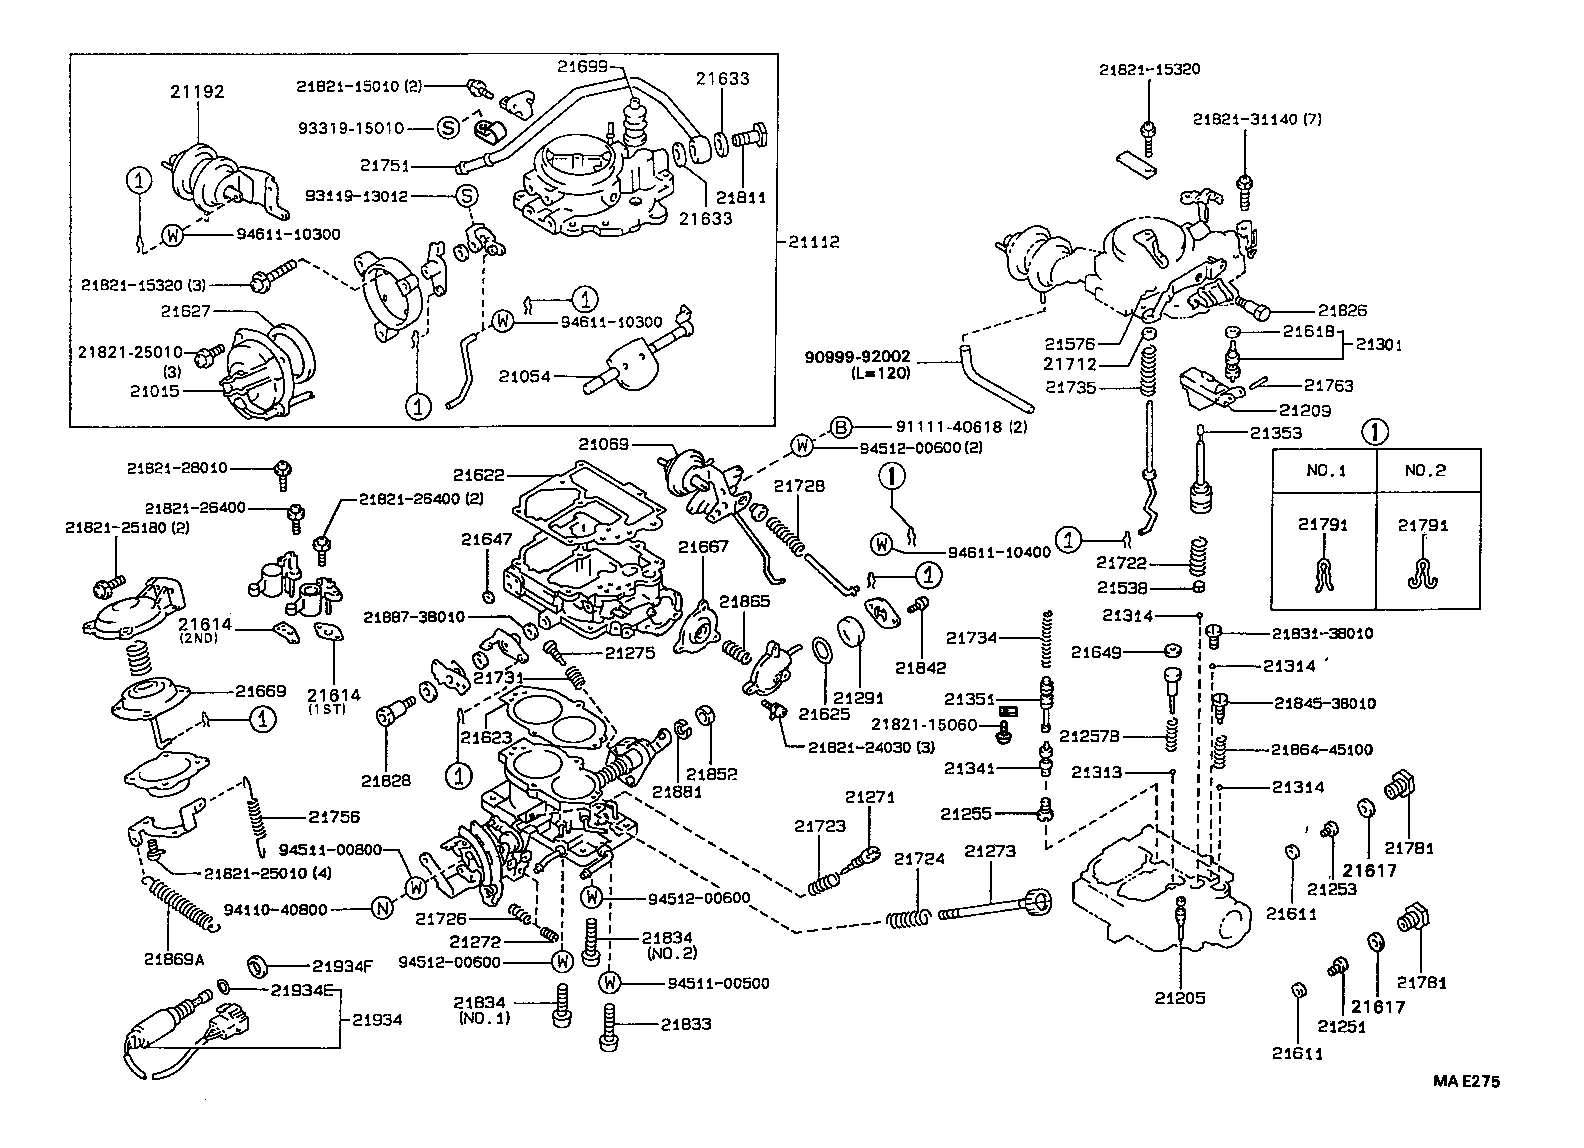 82 Toyotum Alternator Wiring Diagram - Wiring Diagram Networks